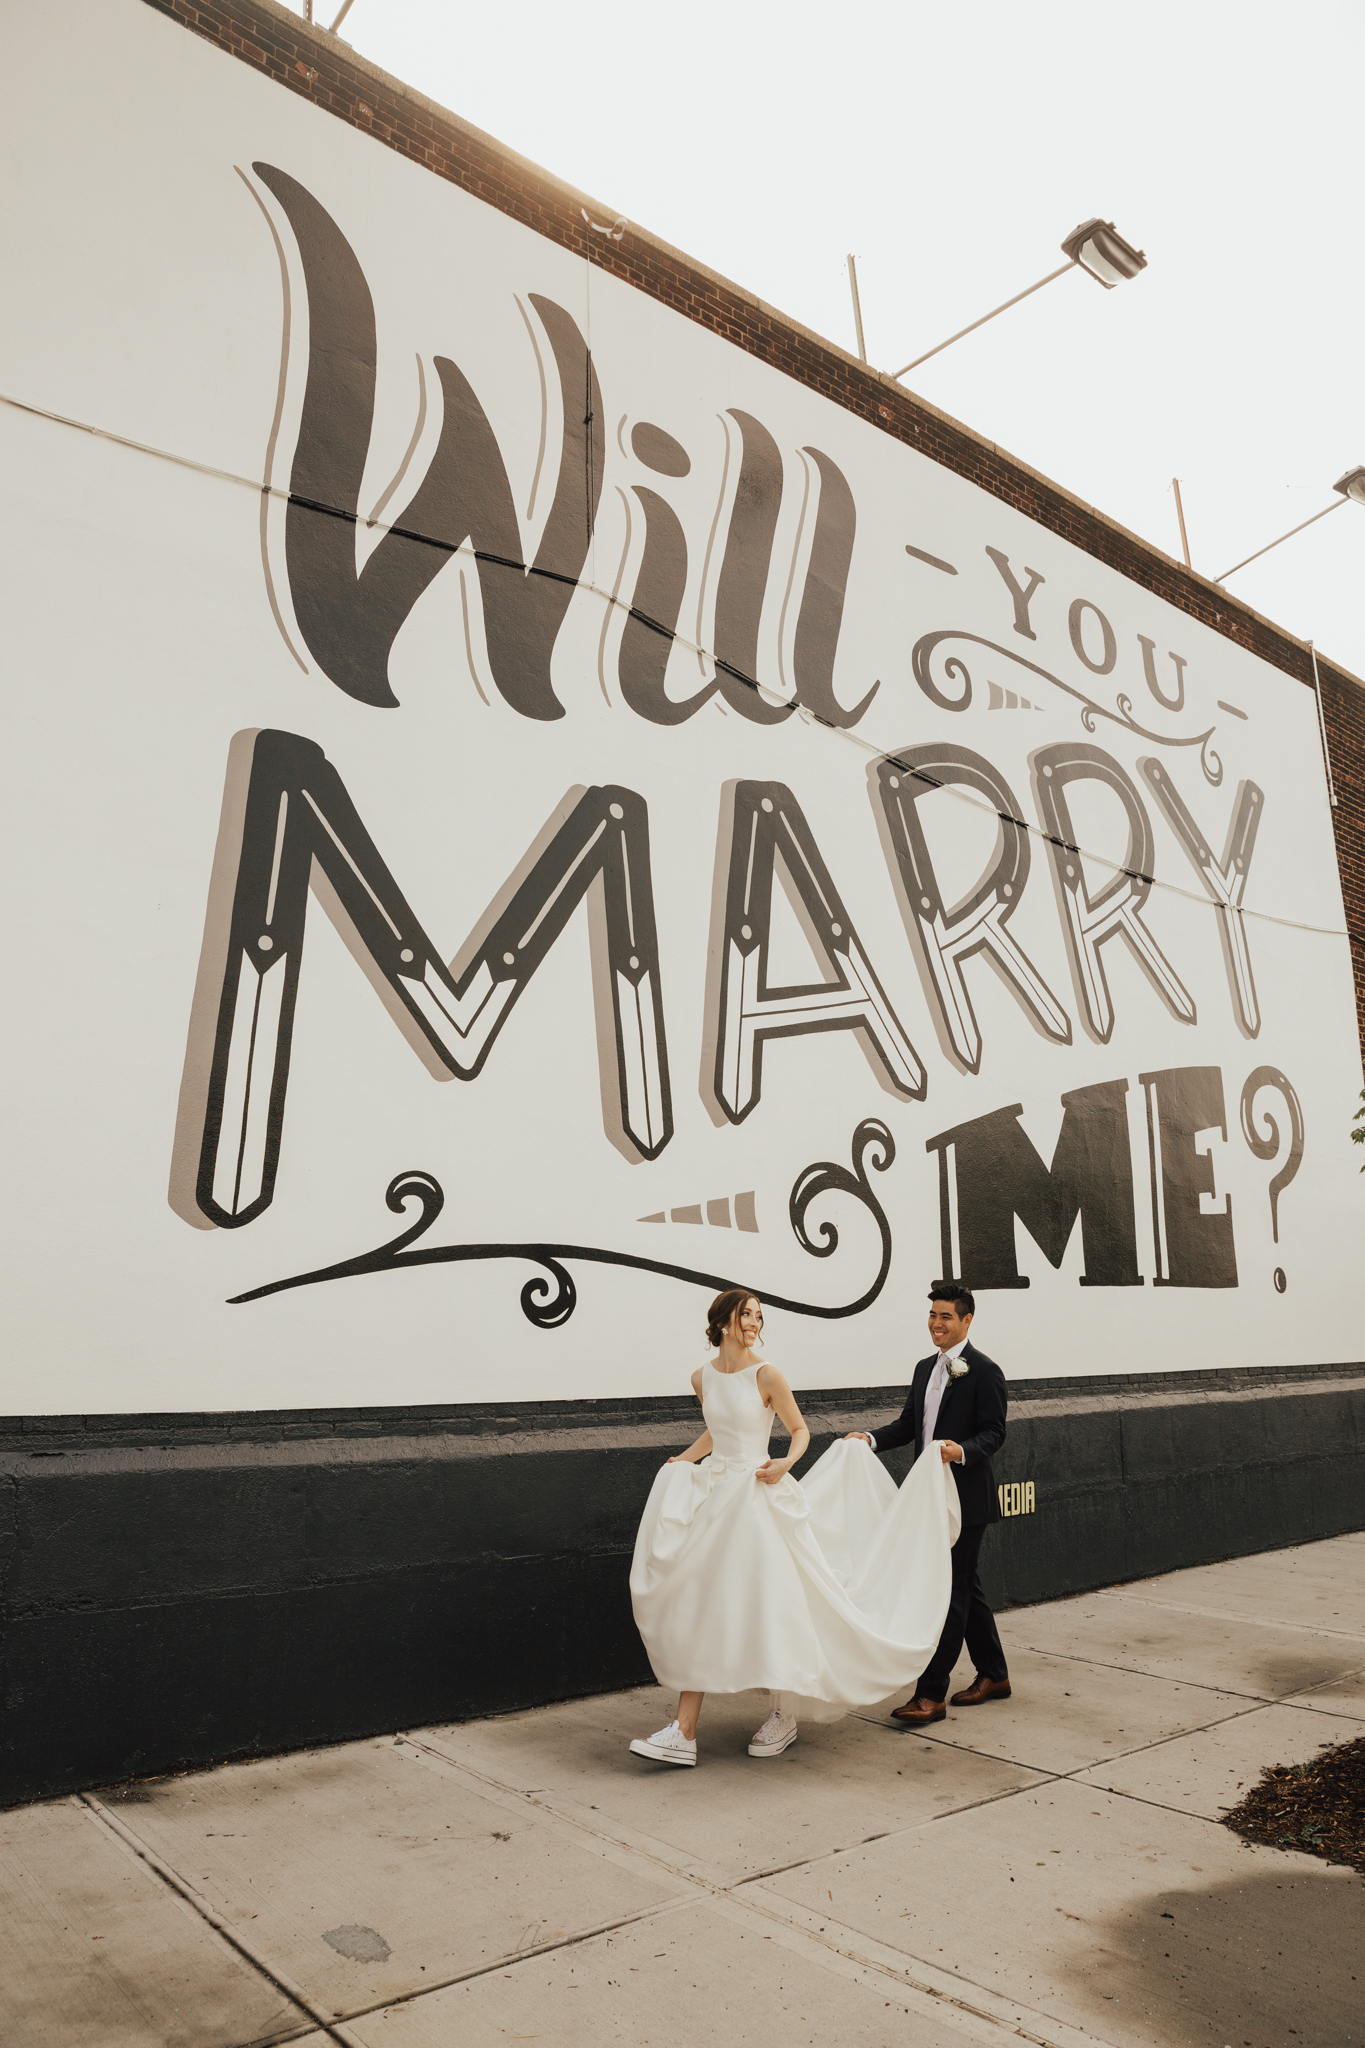 will you marry me graffiti